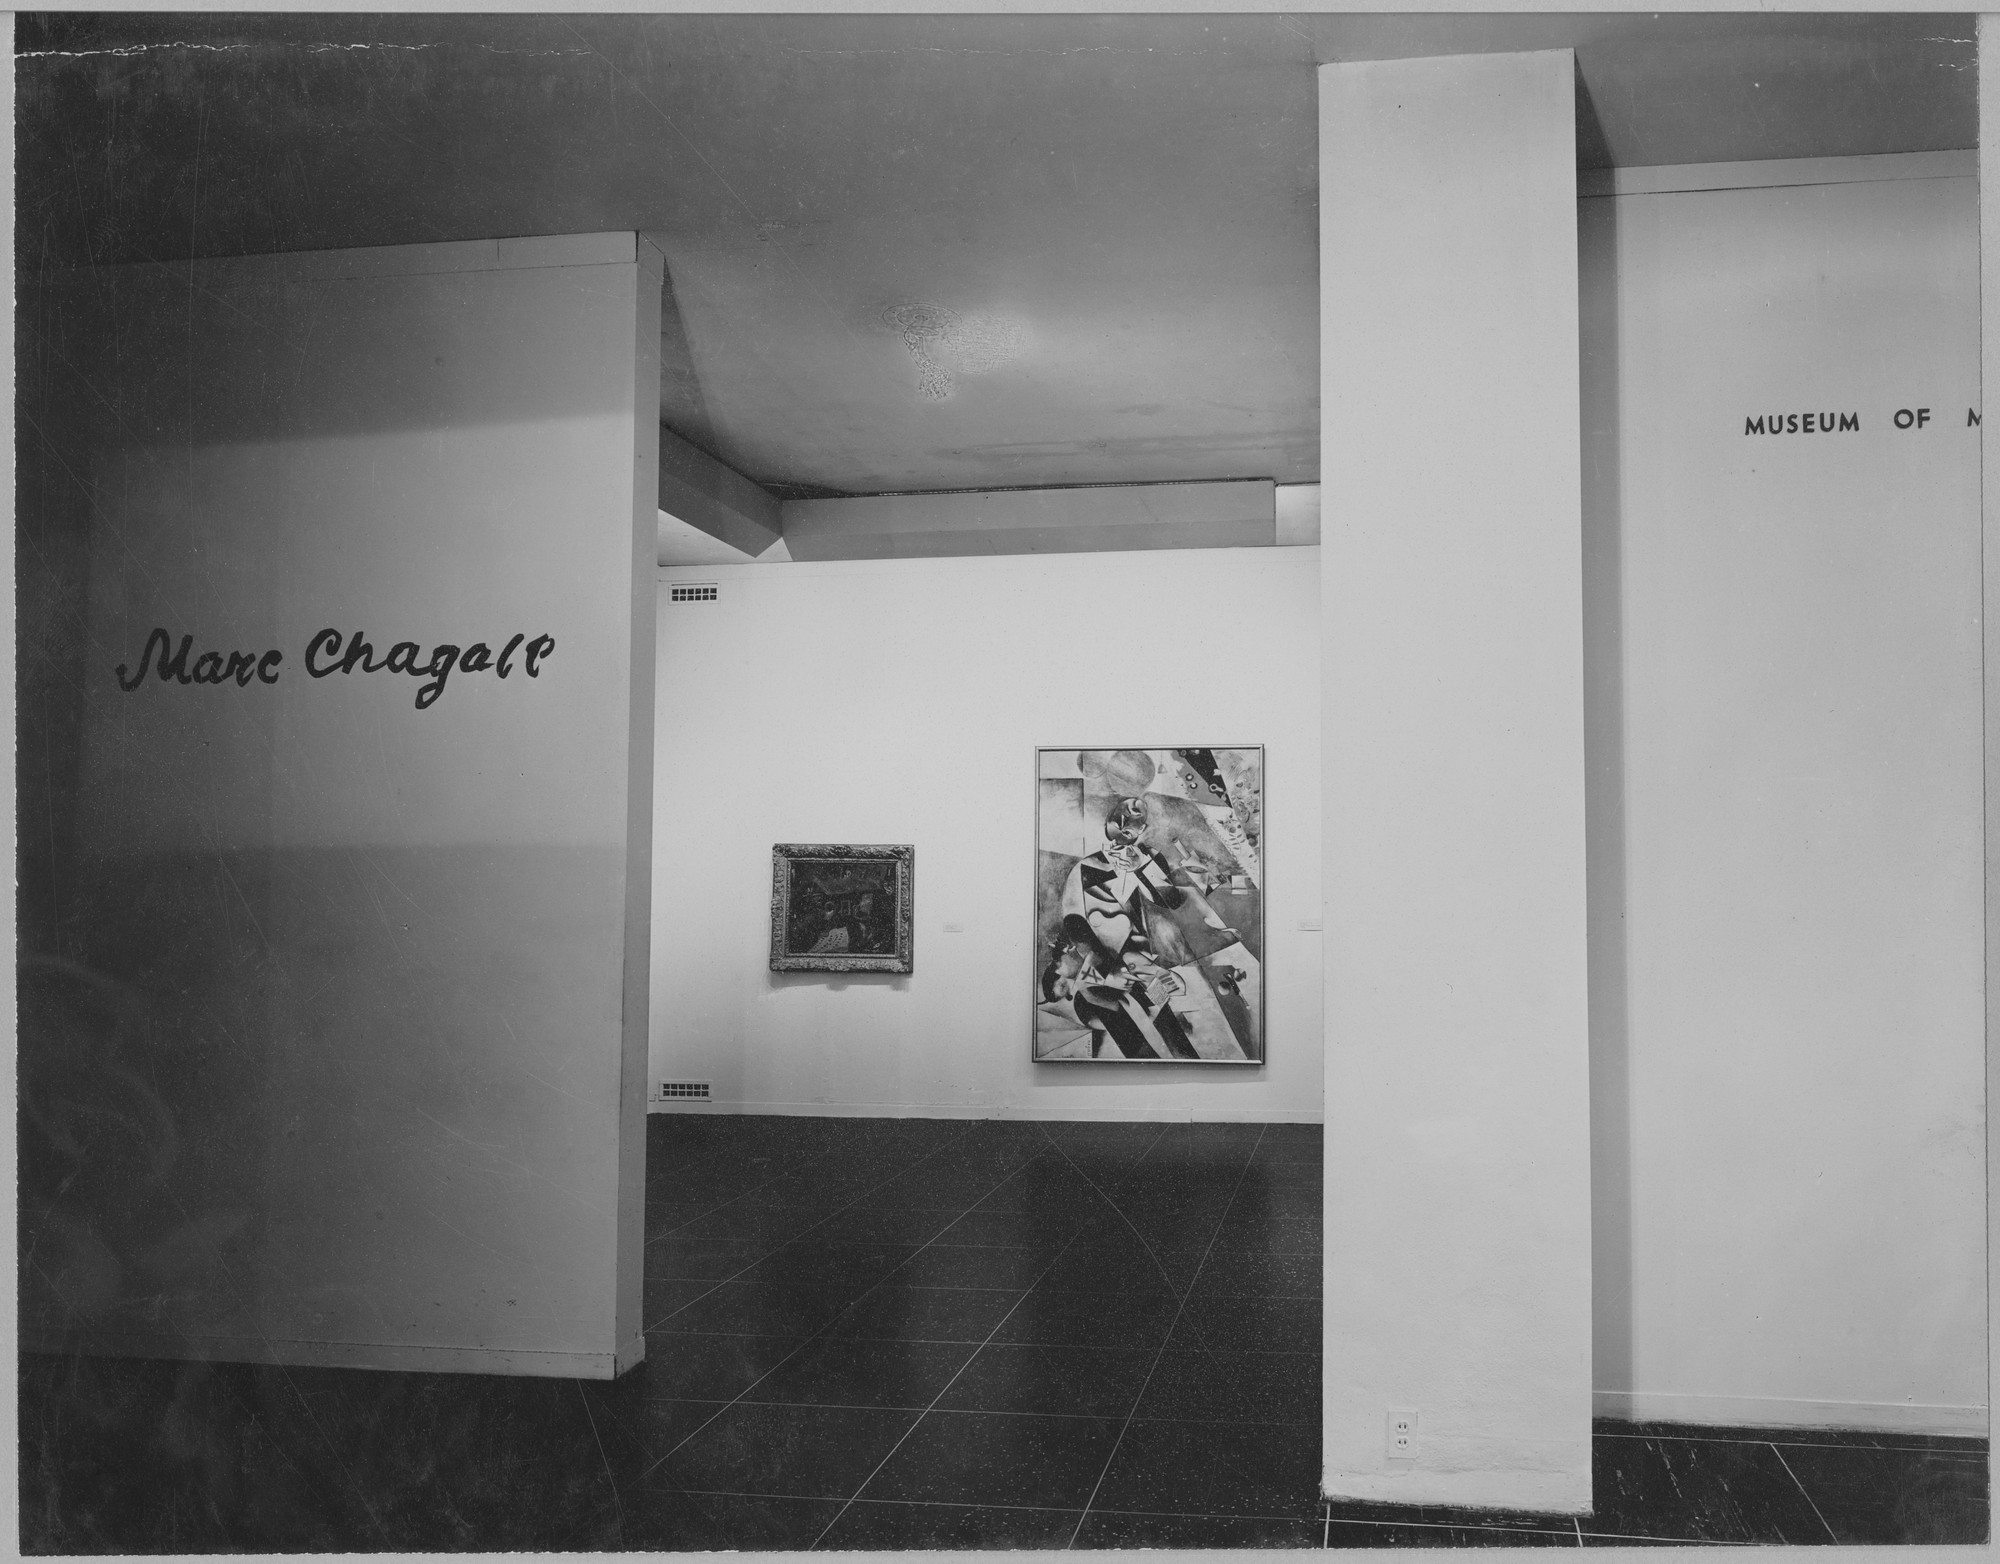 "Installation view of the exhibition, ""Marc Chagall"" April 9, 1946–June 23, 1946. Photographic Archive. The Museum of Modern Art Archives, New York. IN316.1. Photograph by Soichi Sunami."